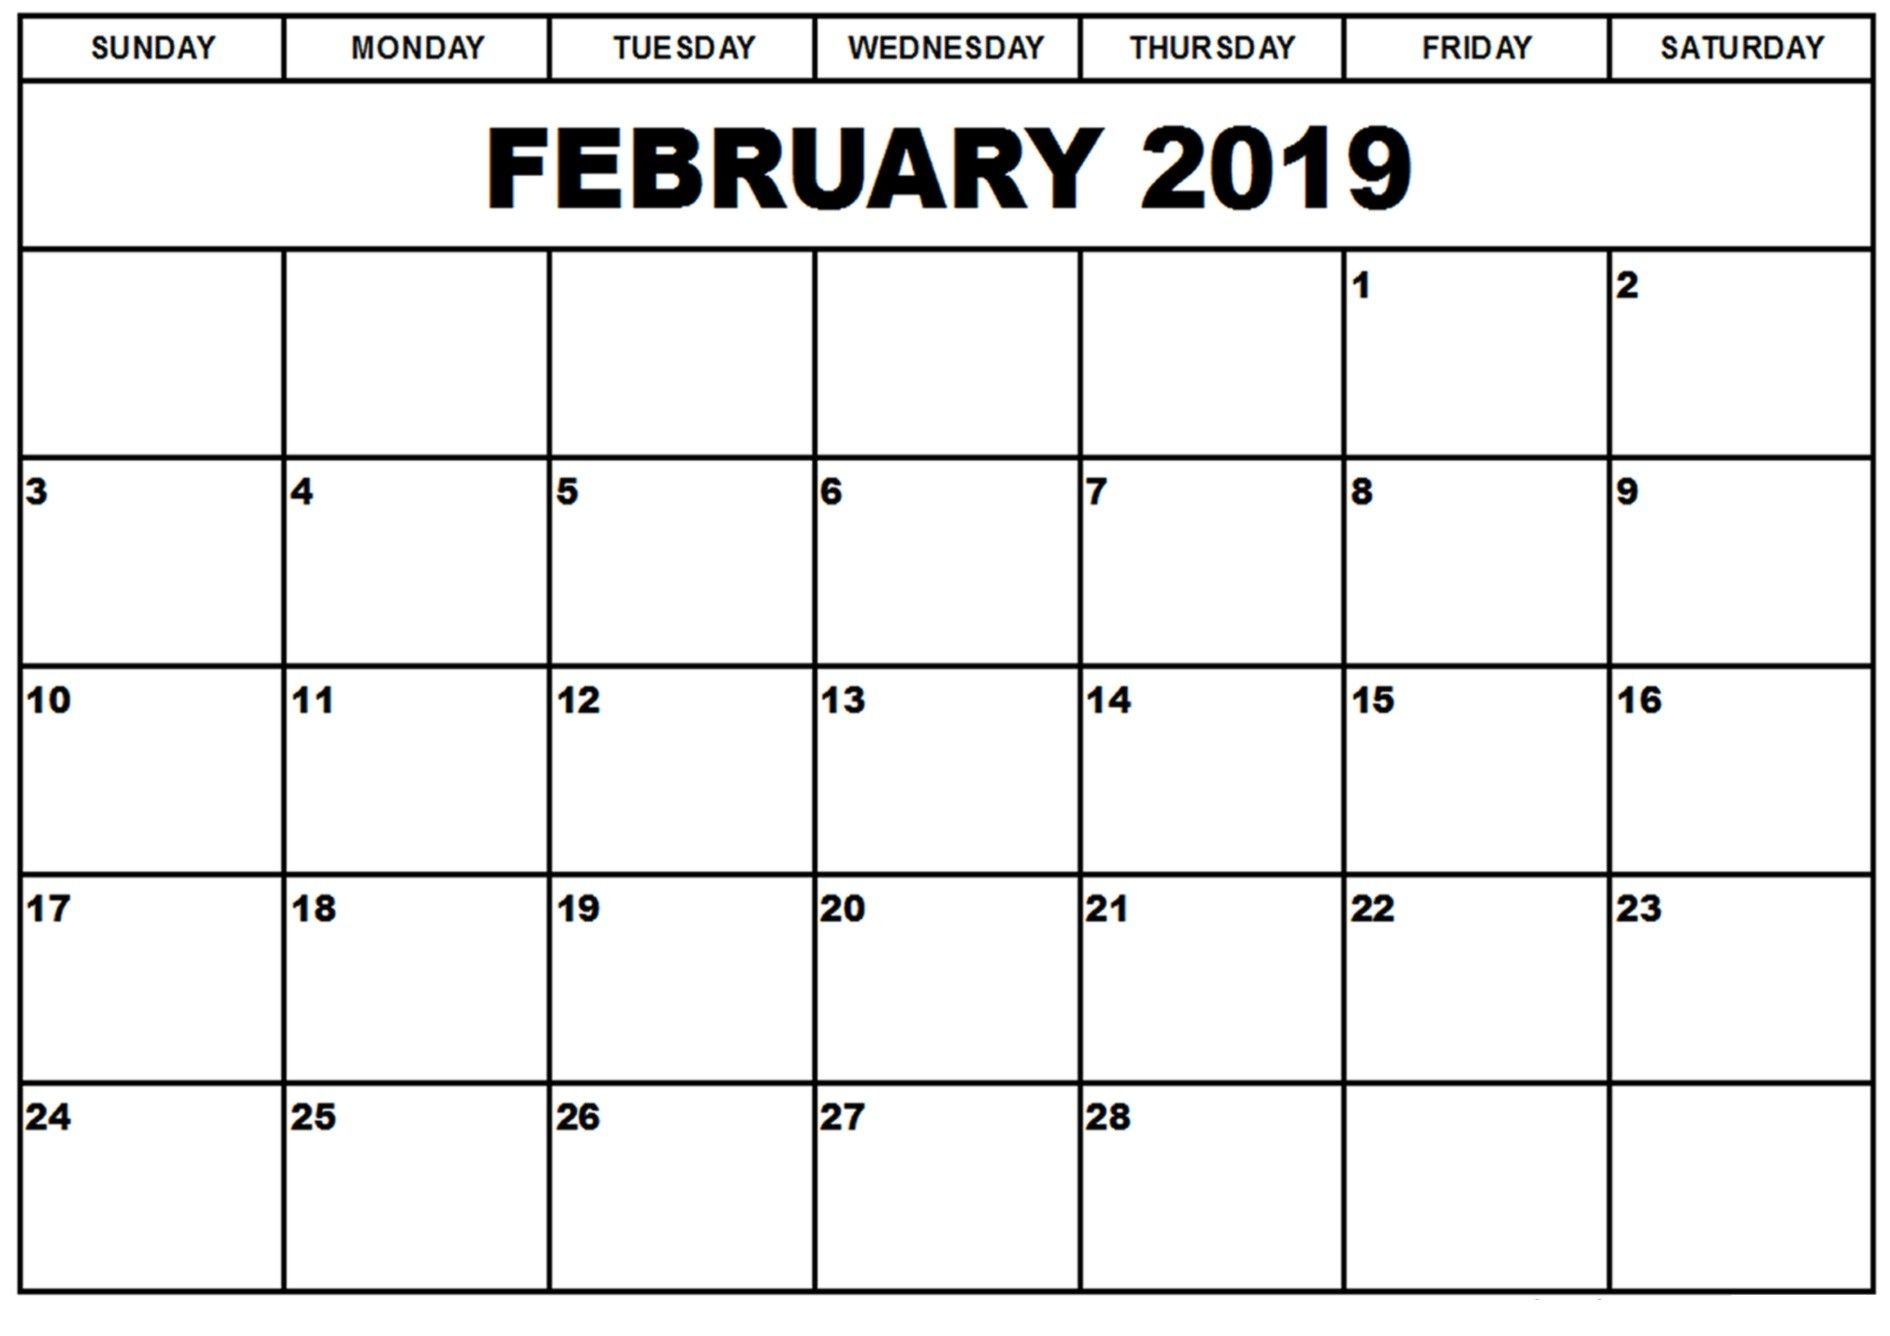 February 2019 Calendar Fillable (With Images) | Editable Inside Free June 2020 Activities Calendar Template Assisted Living Editable